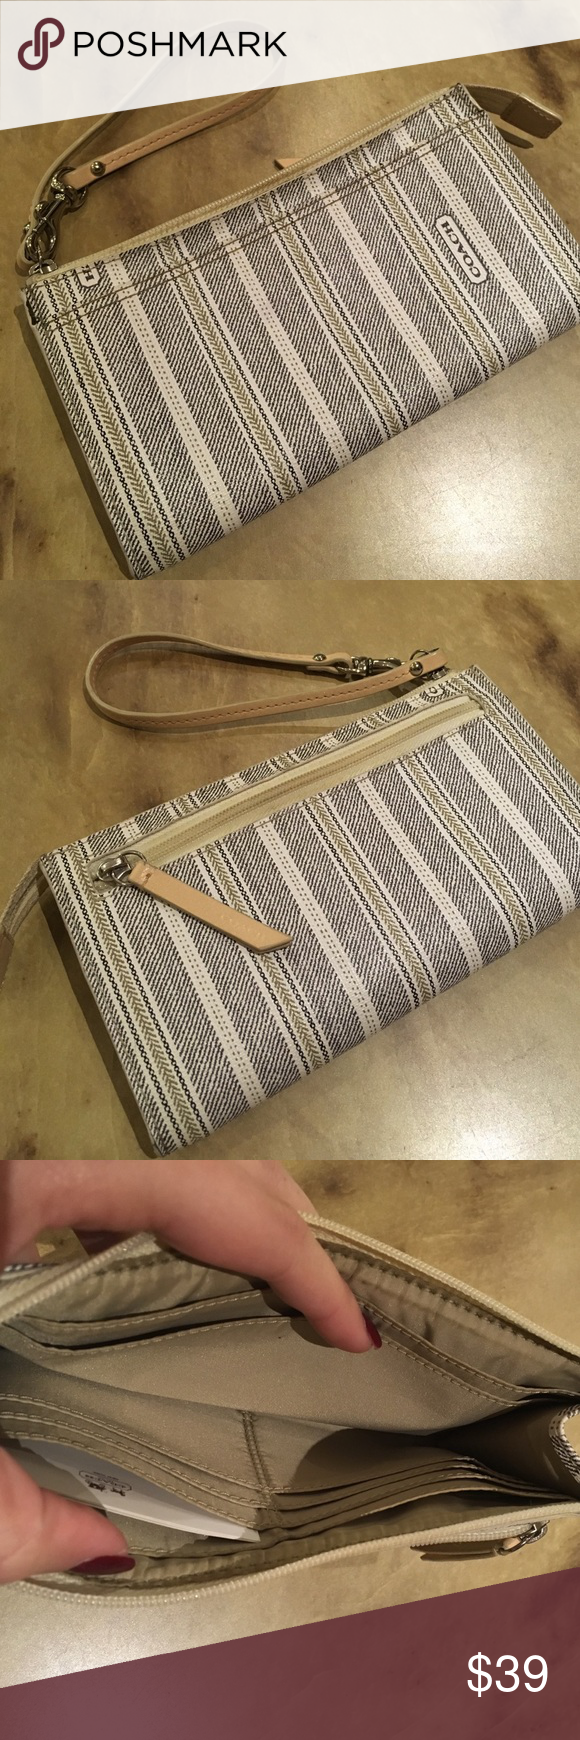 Coach Authentic Wallet Wristlet Coach Authentic wallet wristlets gently used condition still has tons of life. 😊 all reasonable offers accepted ❓feel free to ask any questions 🚭 smoke free home 🌀 bundle and save 💸 🙌🏼 thanks so much for stopping by 💜 happy poshing 💖 Coach Bags Clutches & Wristlets